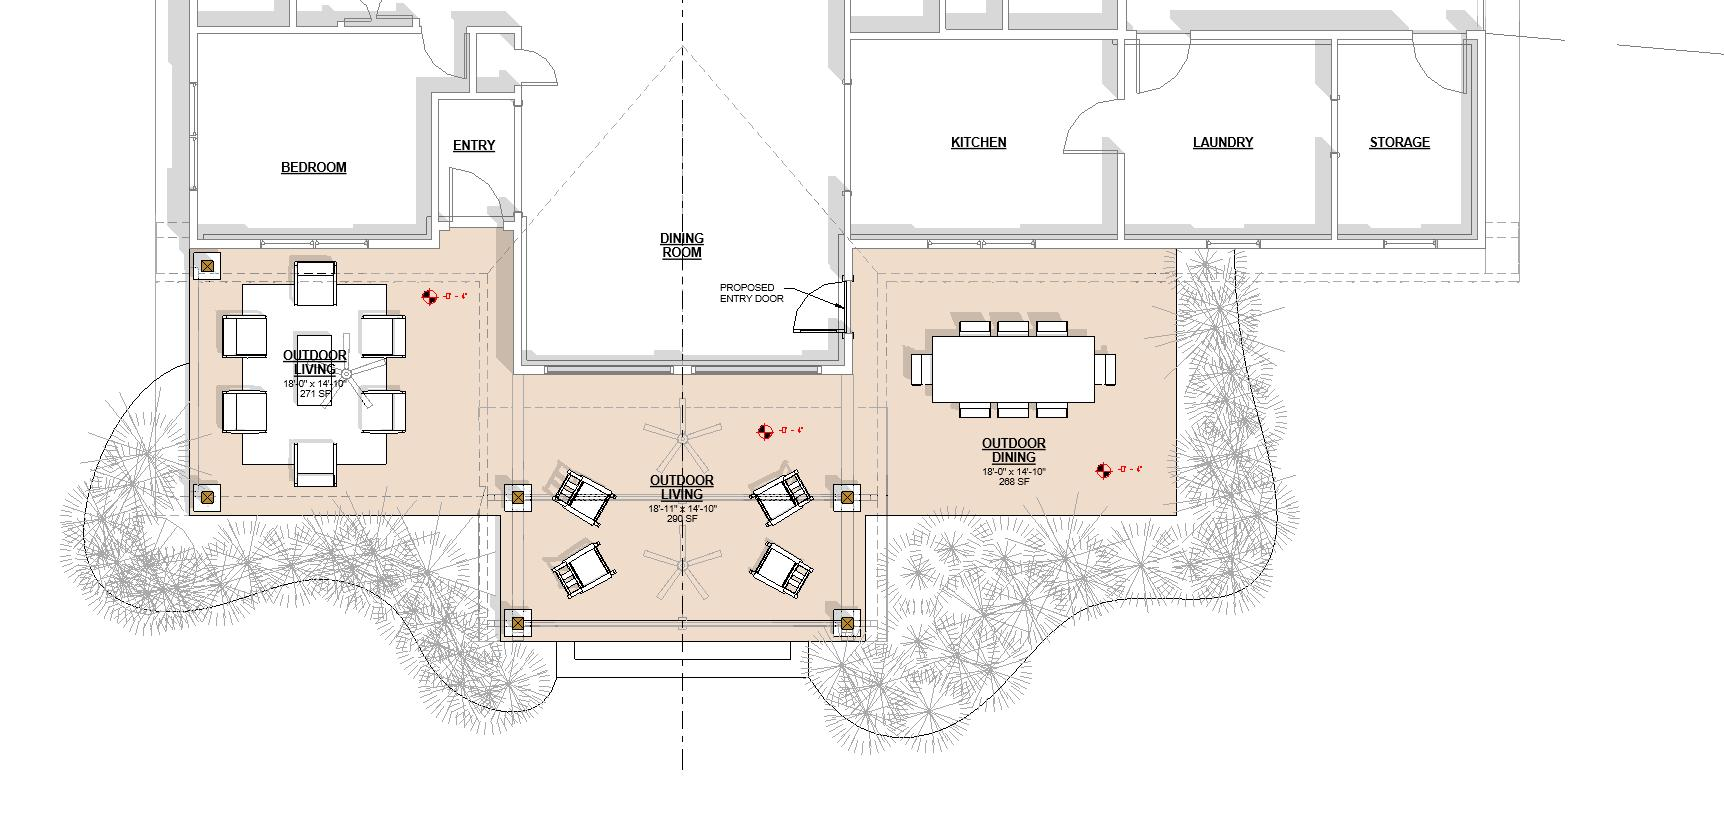 2019 - Floor Plan - Level 1 - Pres - Fro